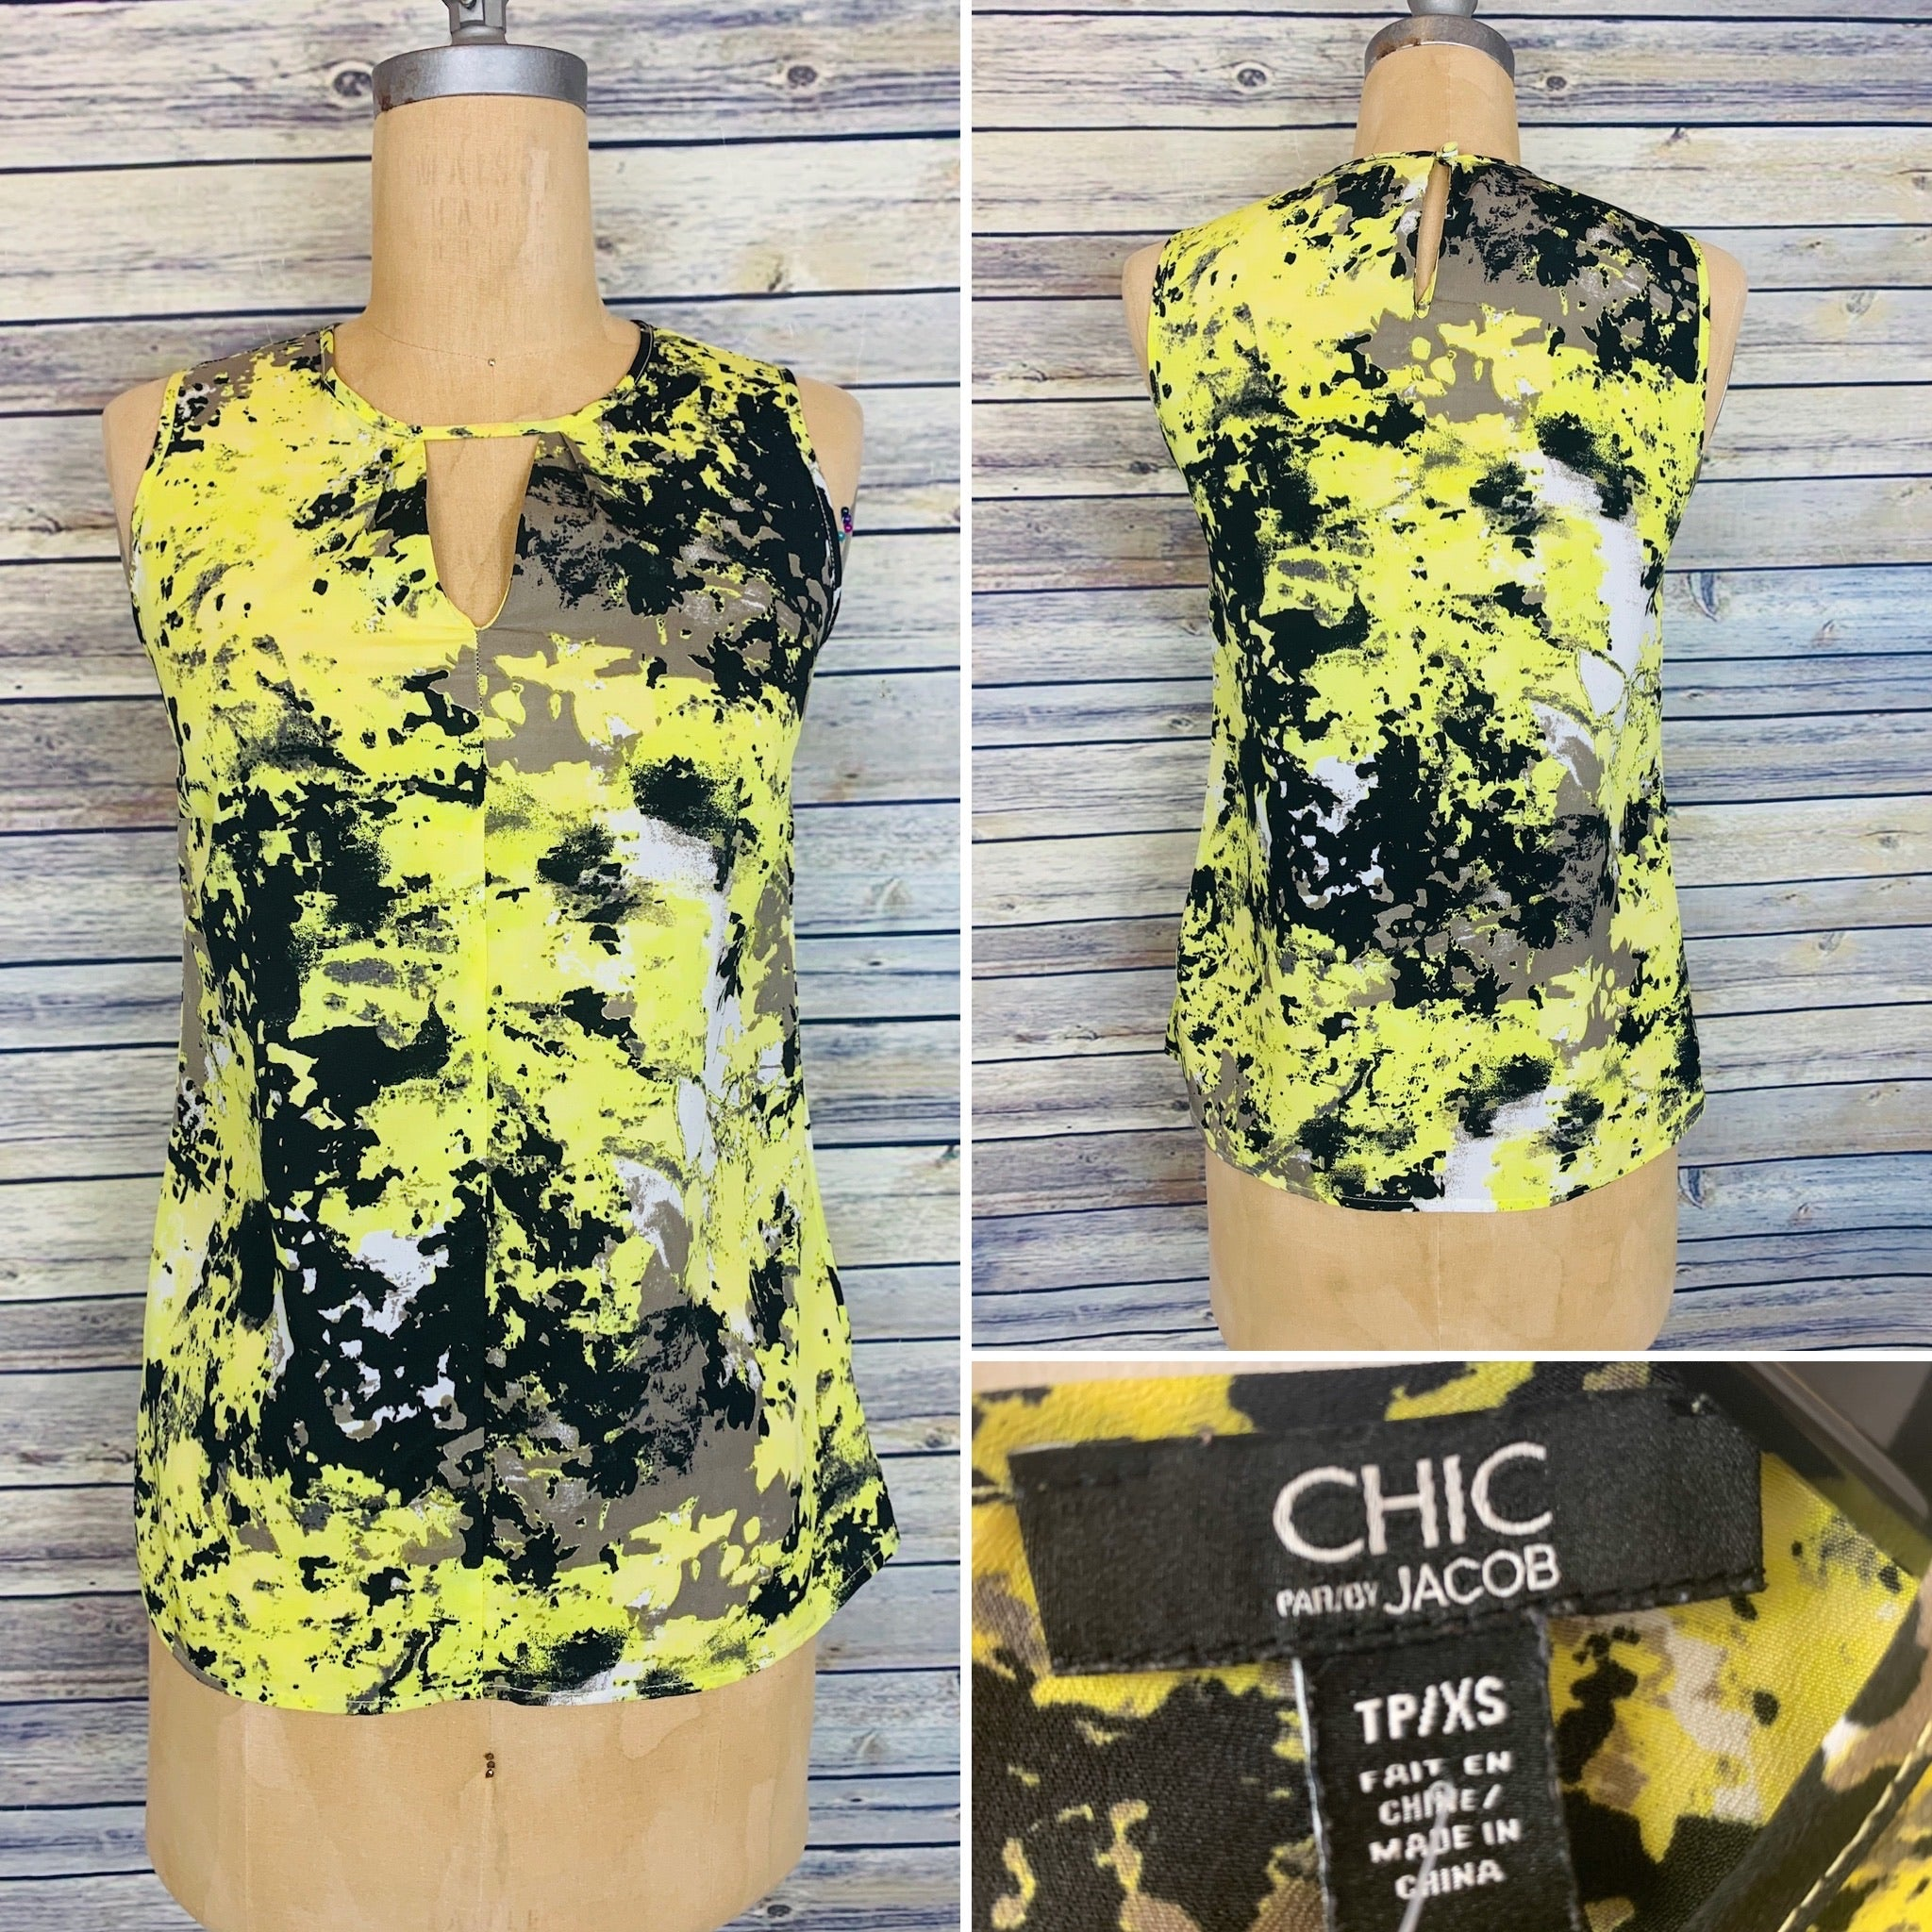 Chic by Jacob Top Size XS